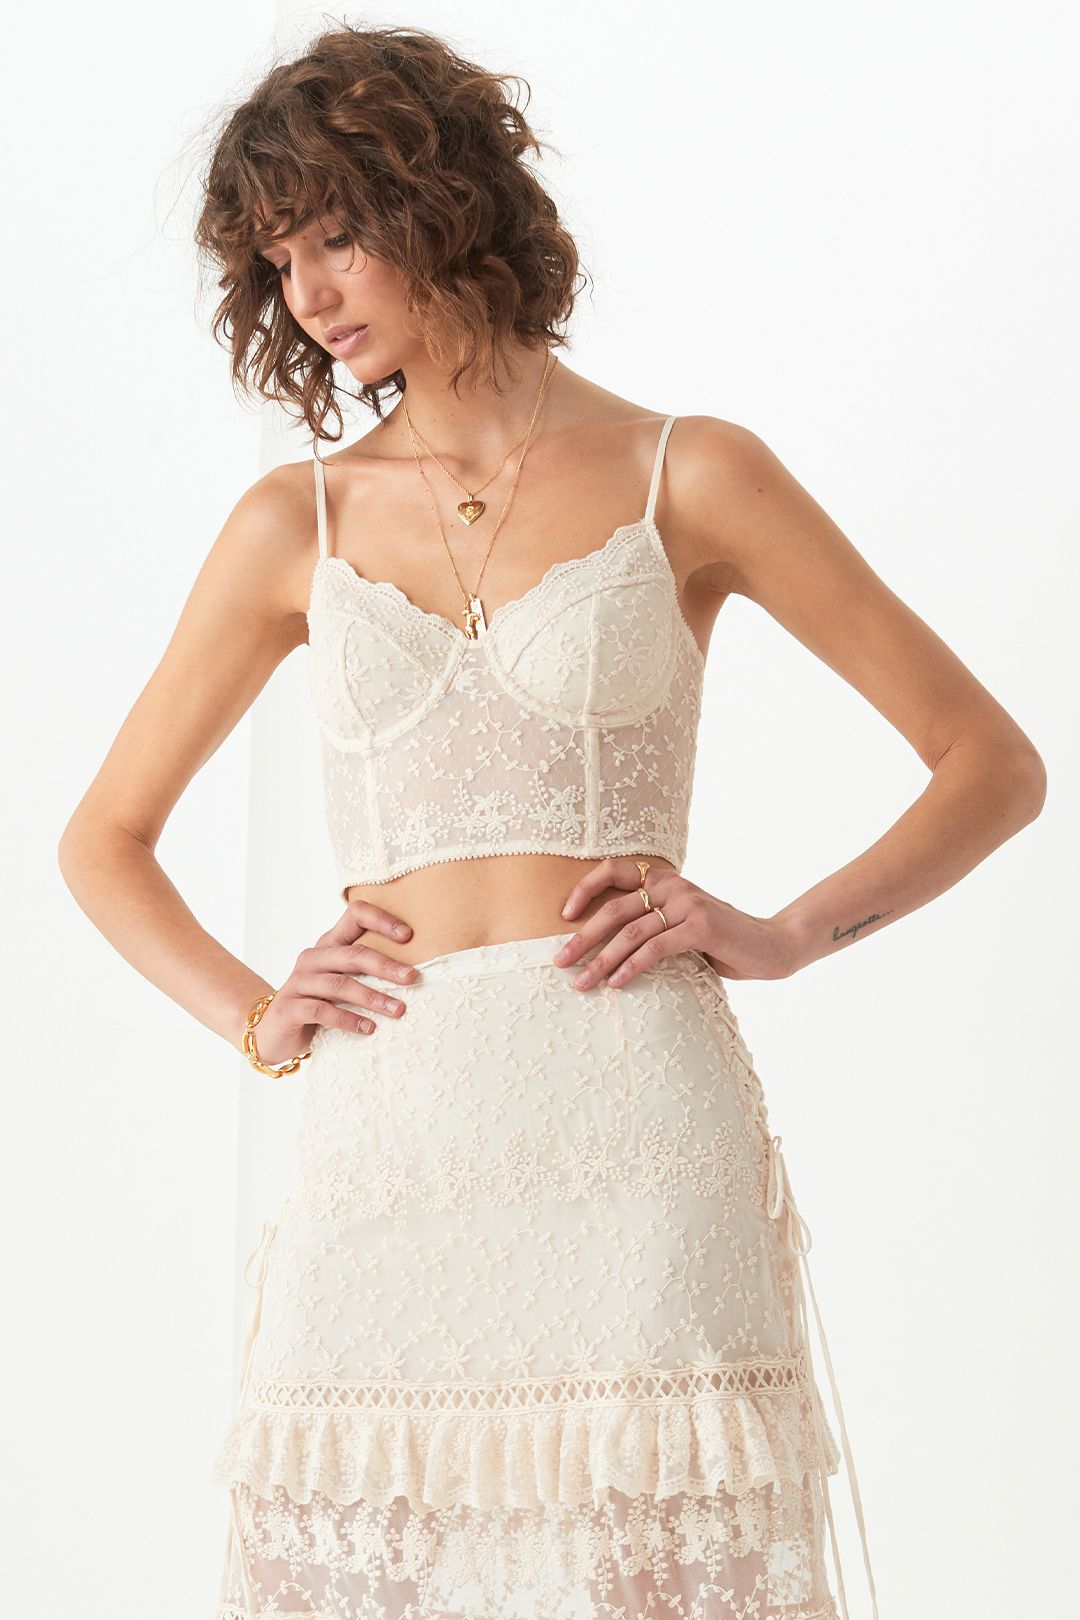 Spell Le Gauze Lace Tiered Skirt and Bustier Set Fitted